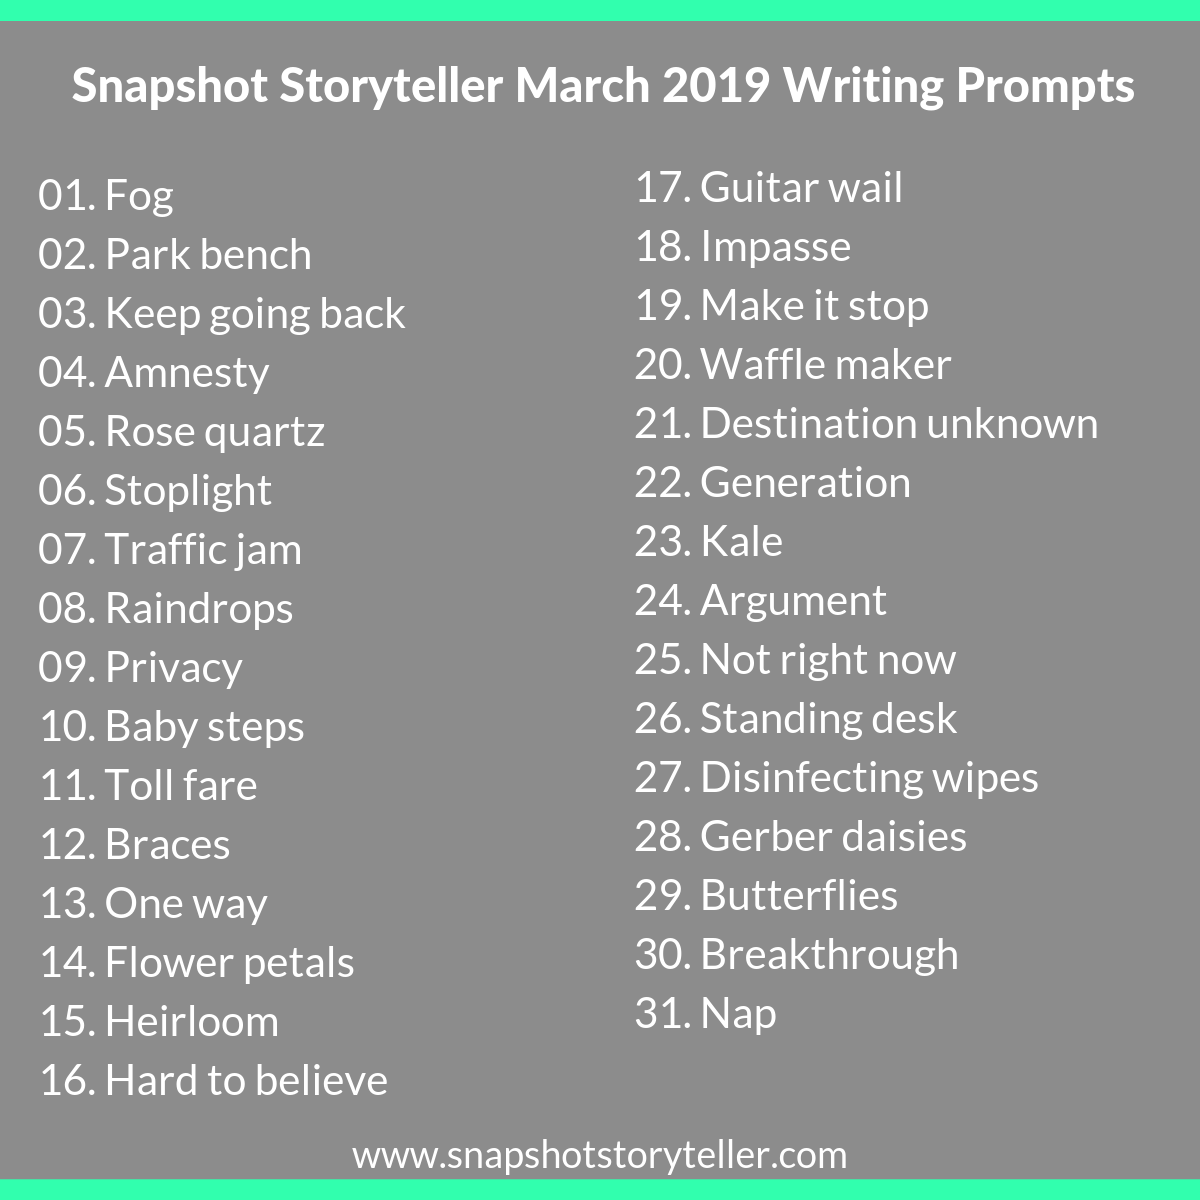 Snapshot Storyteller | March 2019 Writing Prompts | www.snapshotstoryteller.com #amwriting #snapshotstoryteller #creativestoryteller #creative #storyteller #creativewriter #IWrite #WriteOn #writingprompts #writingprompt